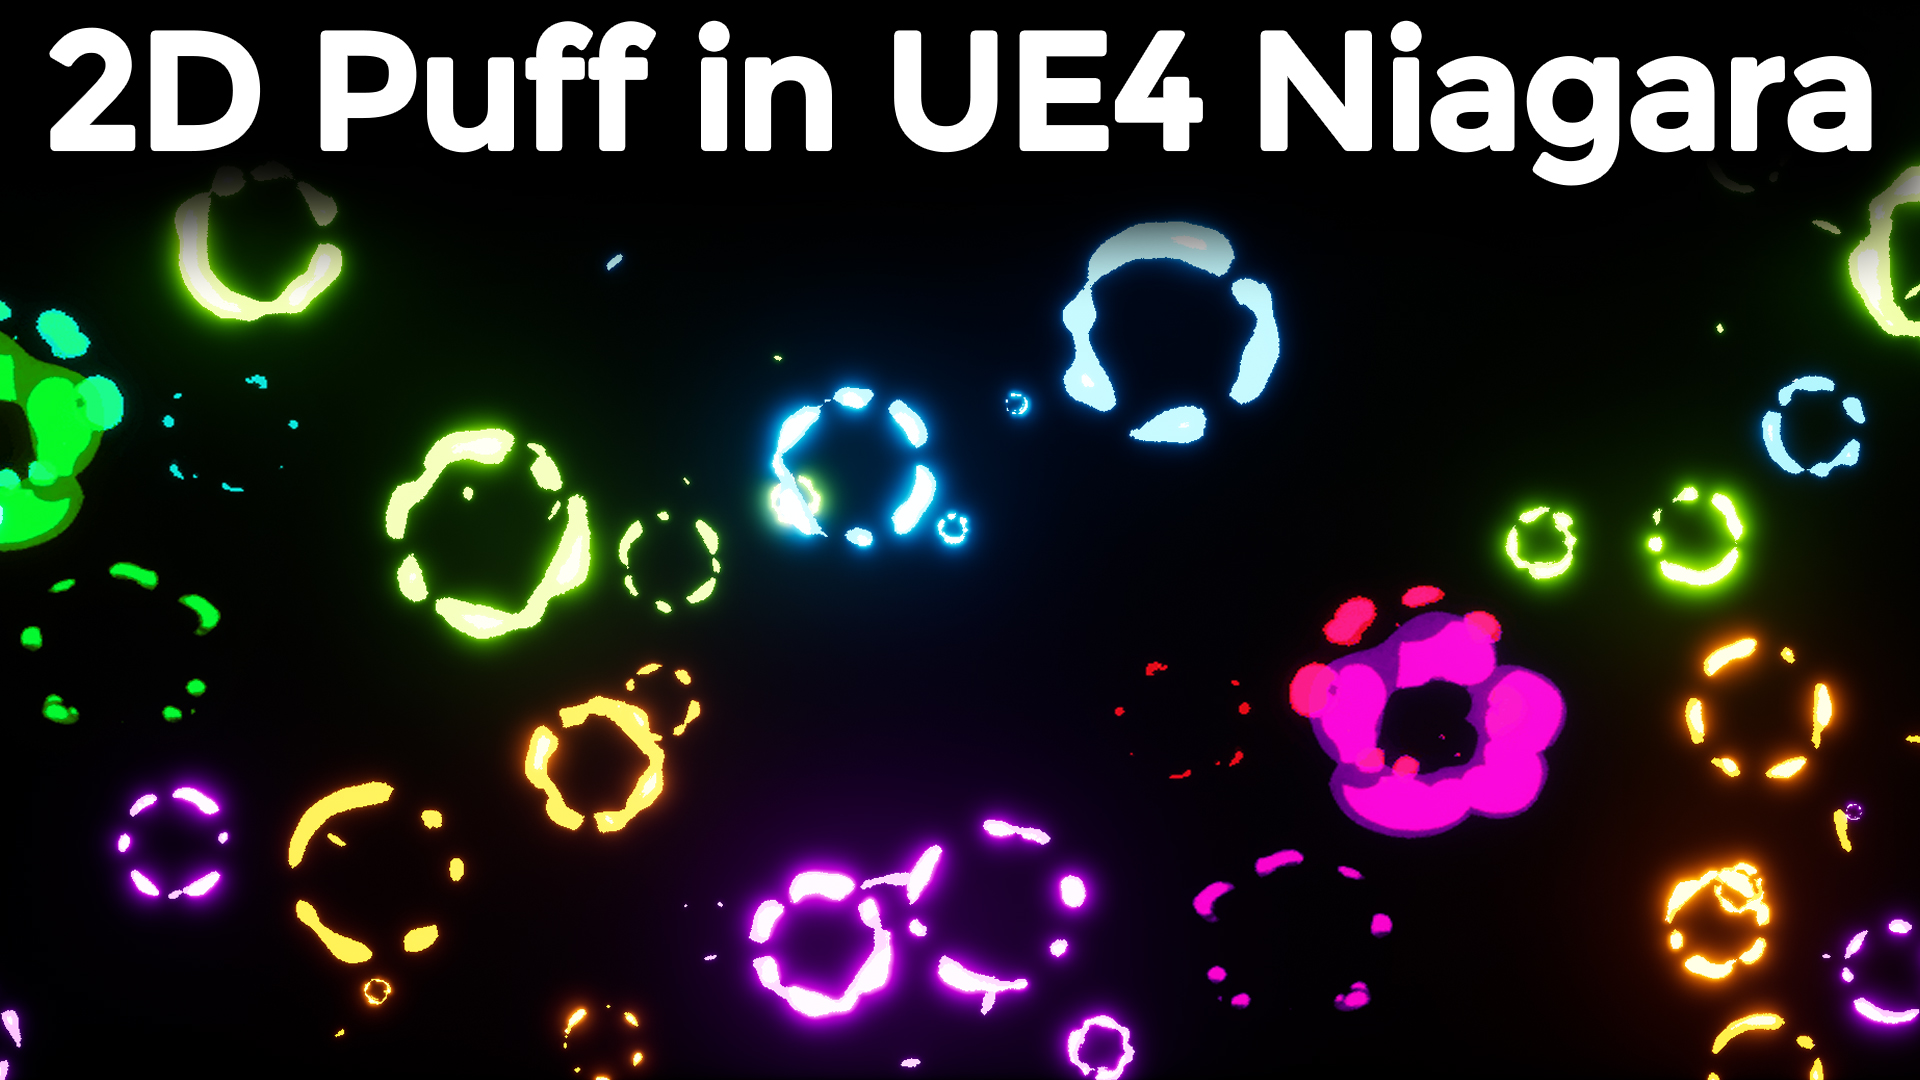 2D Puff Effect in UE4 Niagara Tutorial